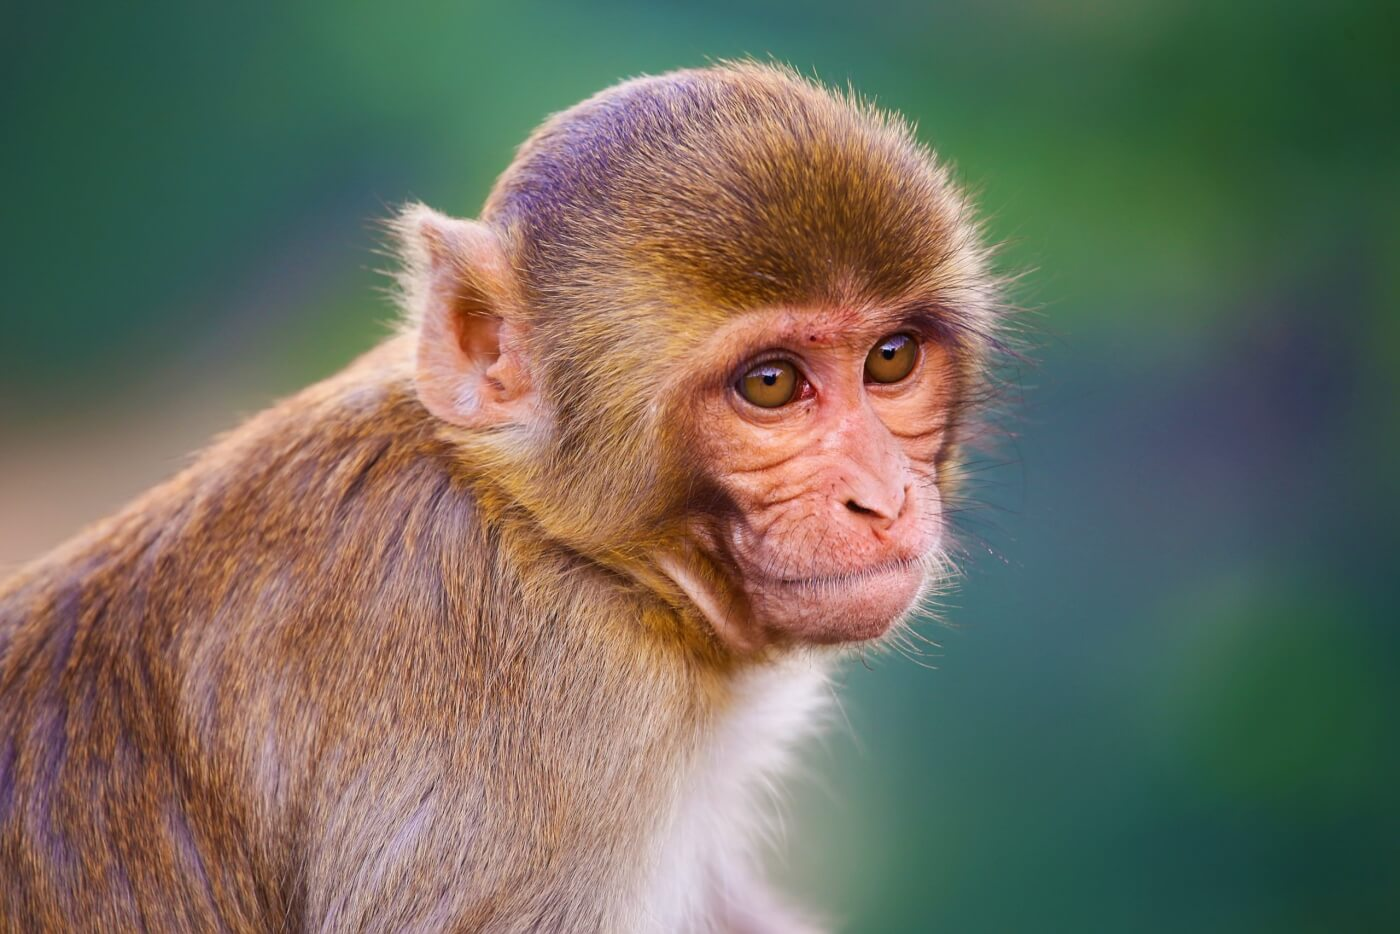 Rhesus macaque with blurry blue and green background